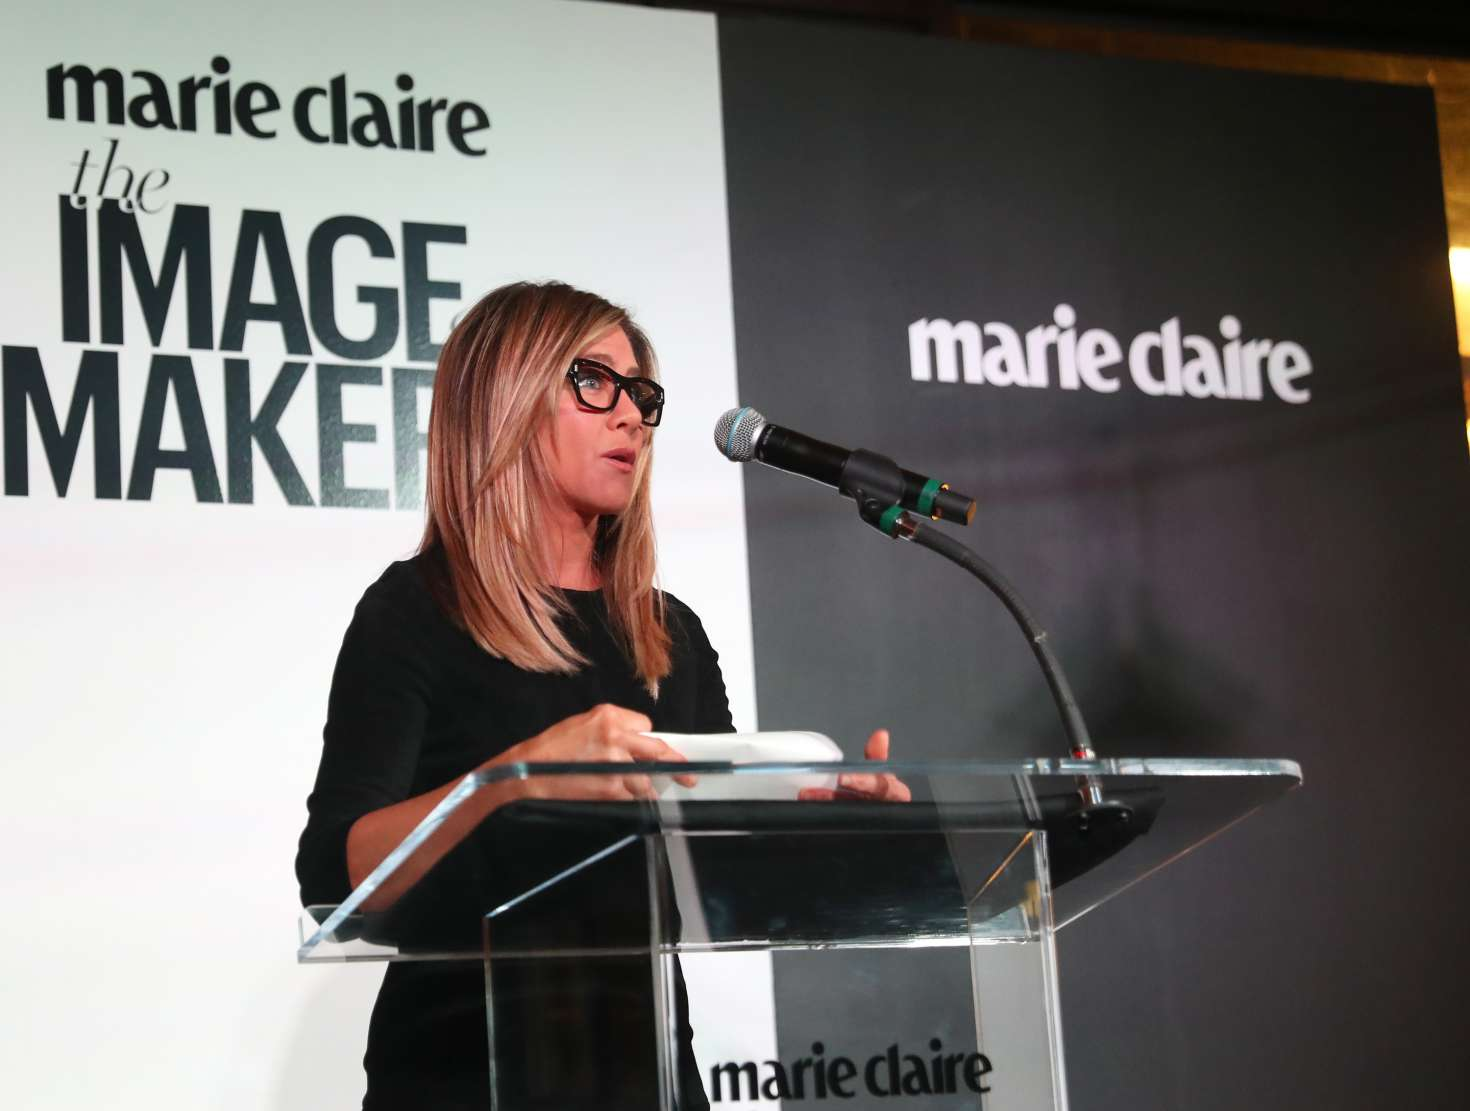 Jennifer-Aniston:-Marie-Claires-Image-Ma